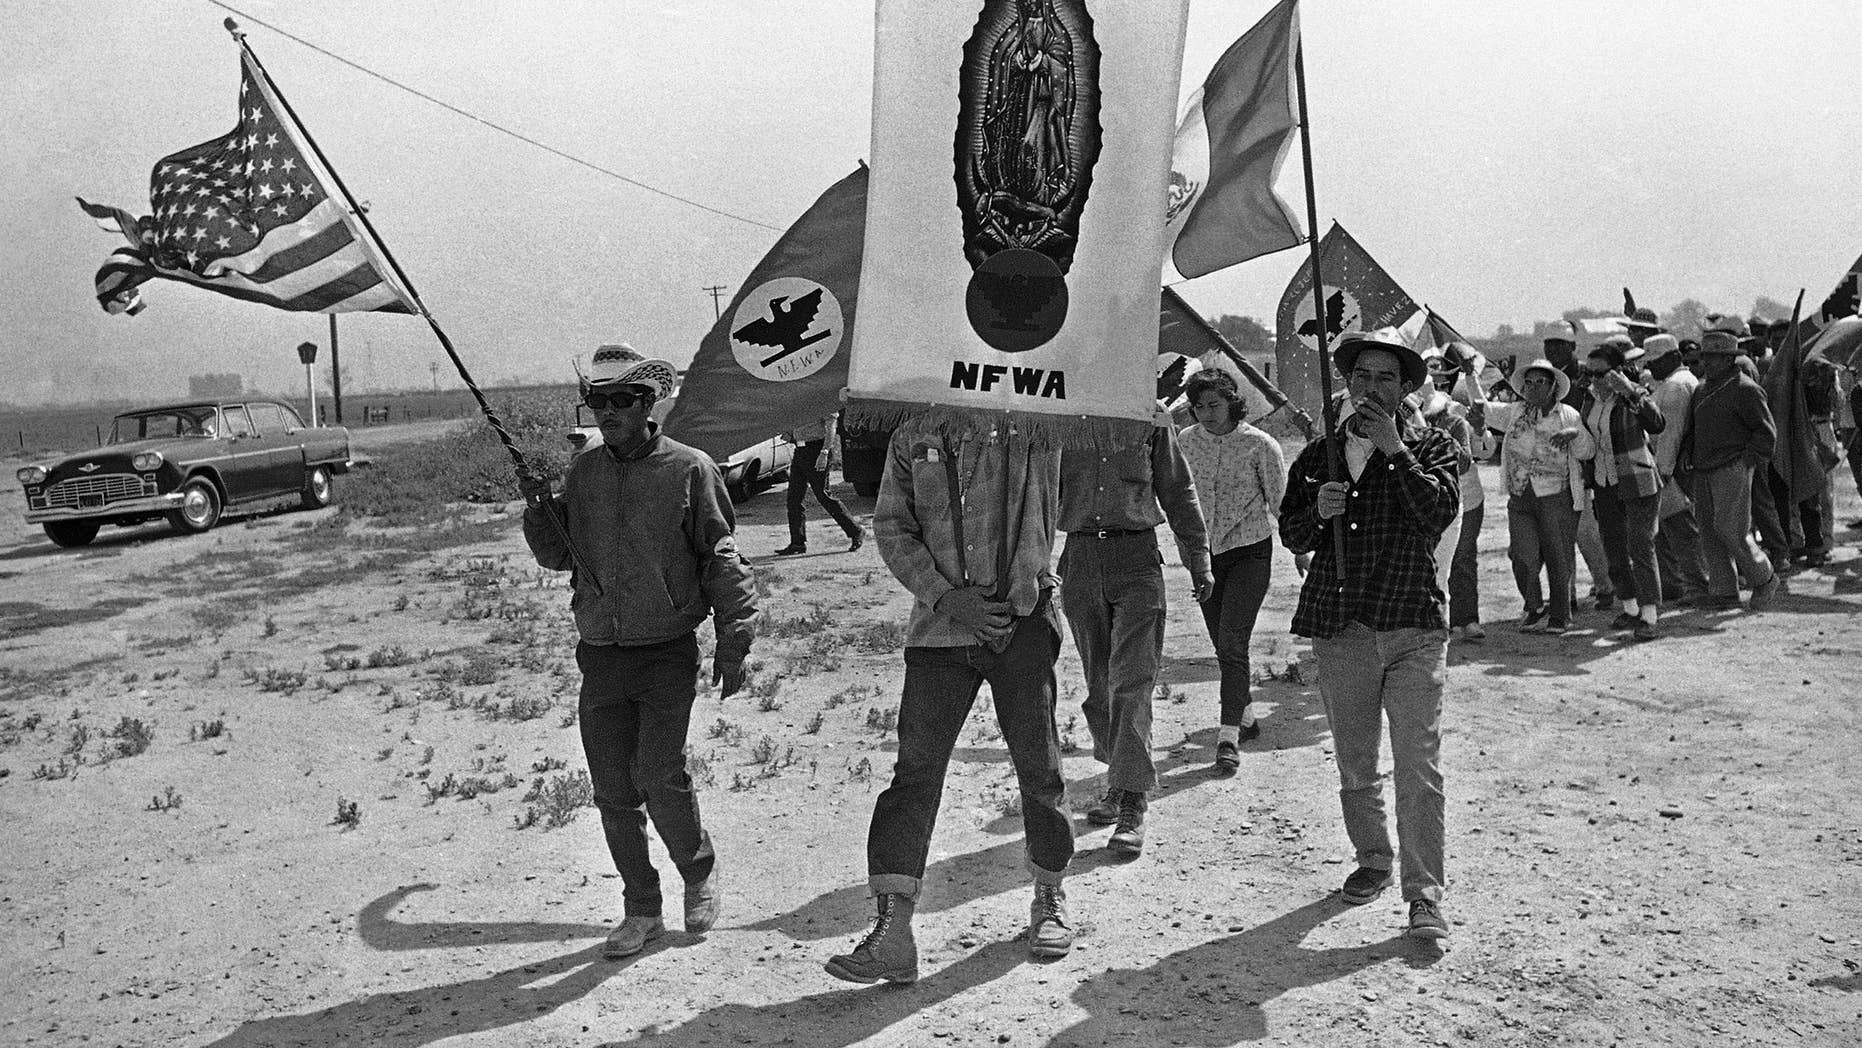 FILE - In this April 7, 1966 file photo, grape strikers on a 300-mile march from Delano, Calif., approach their goal, the Capitol in Sacramento.